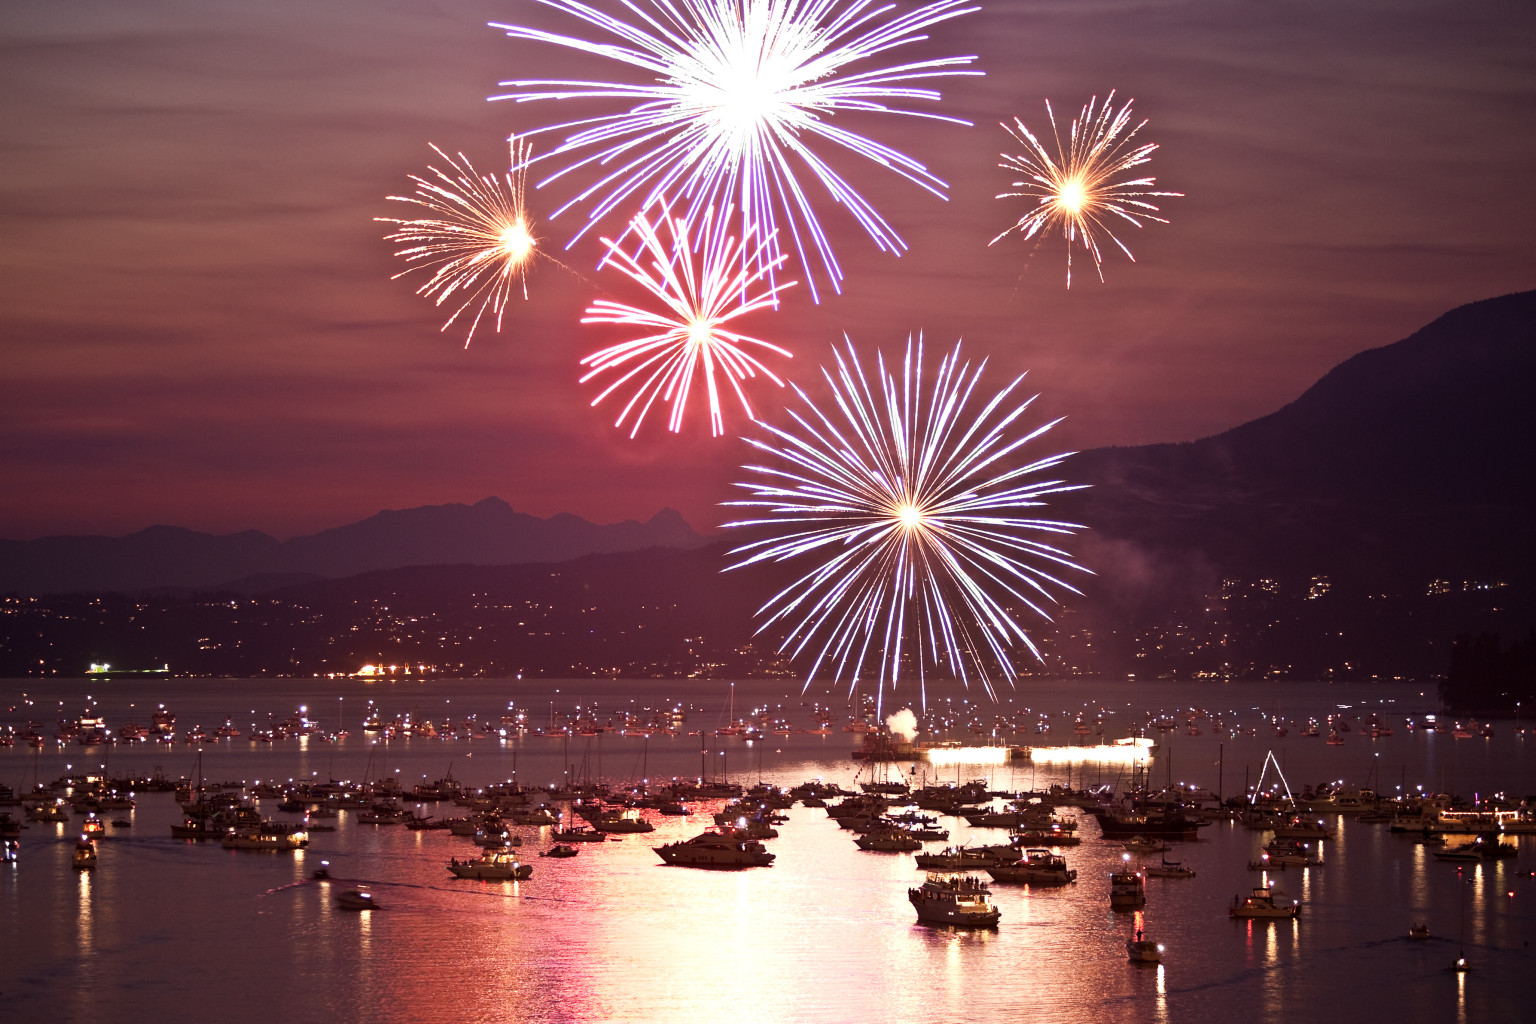 Vancouver Fireworks Celebration Of Light 2013 Survival Guide